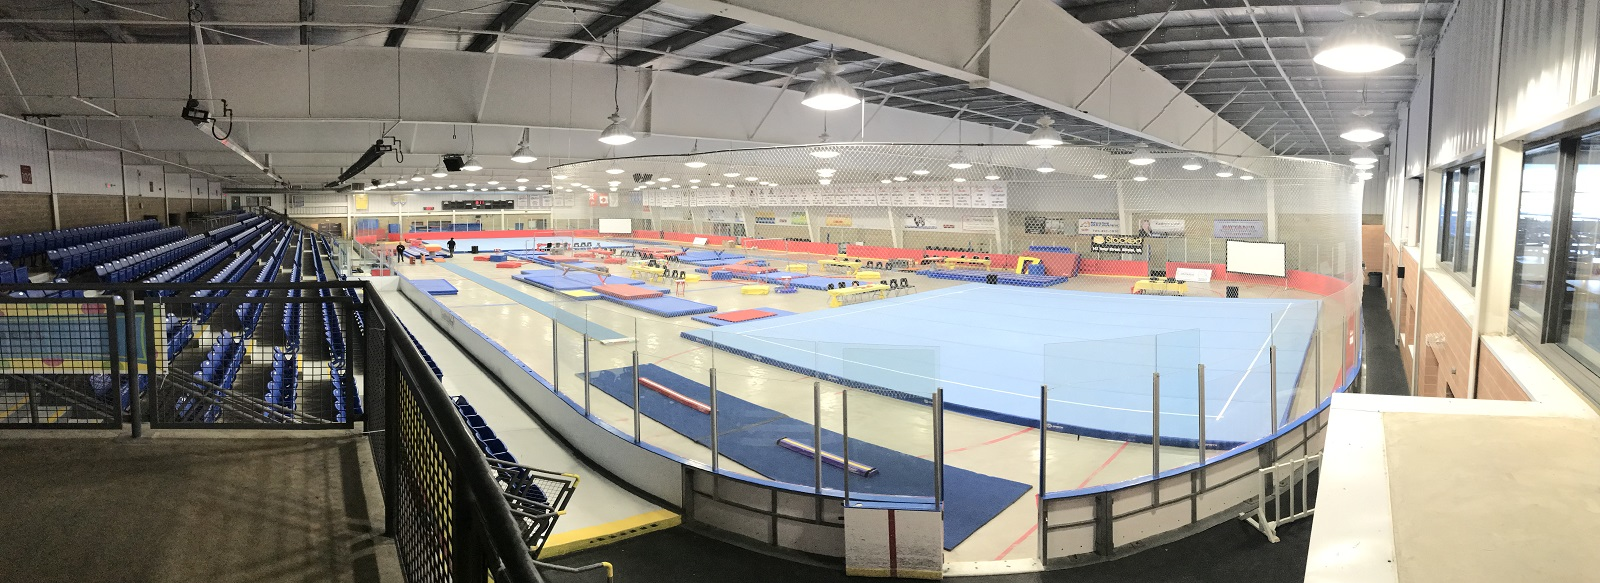 Gymnastics event set up in arena.